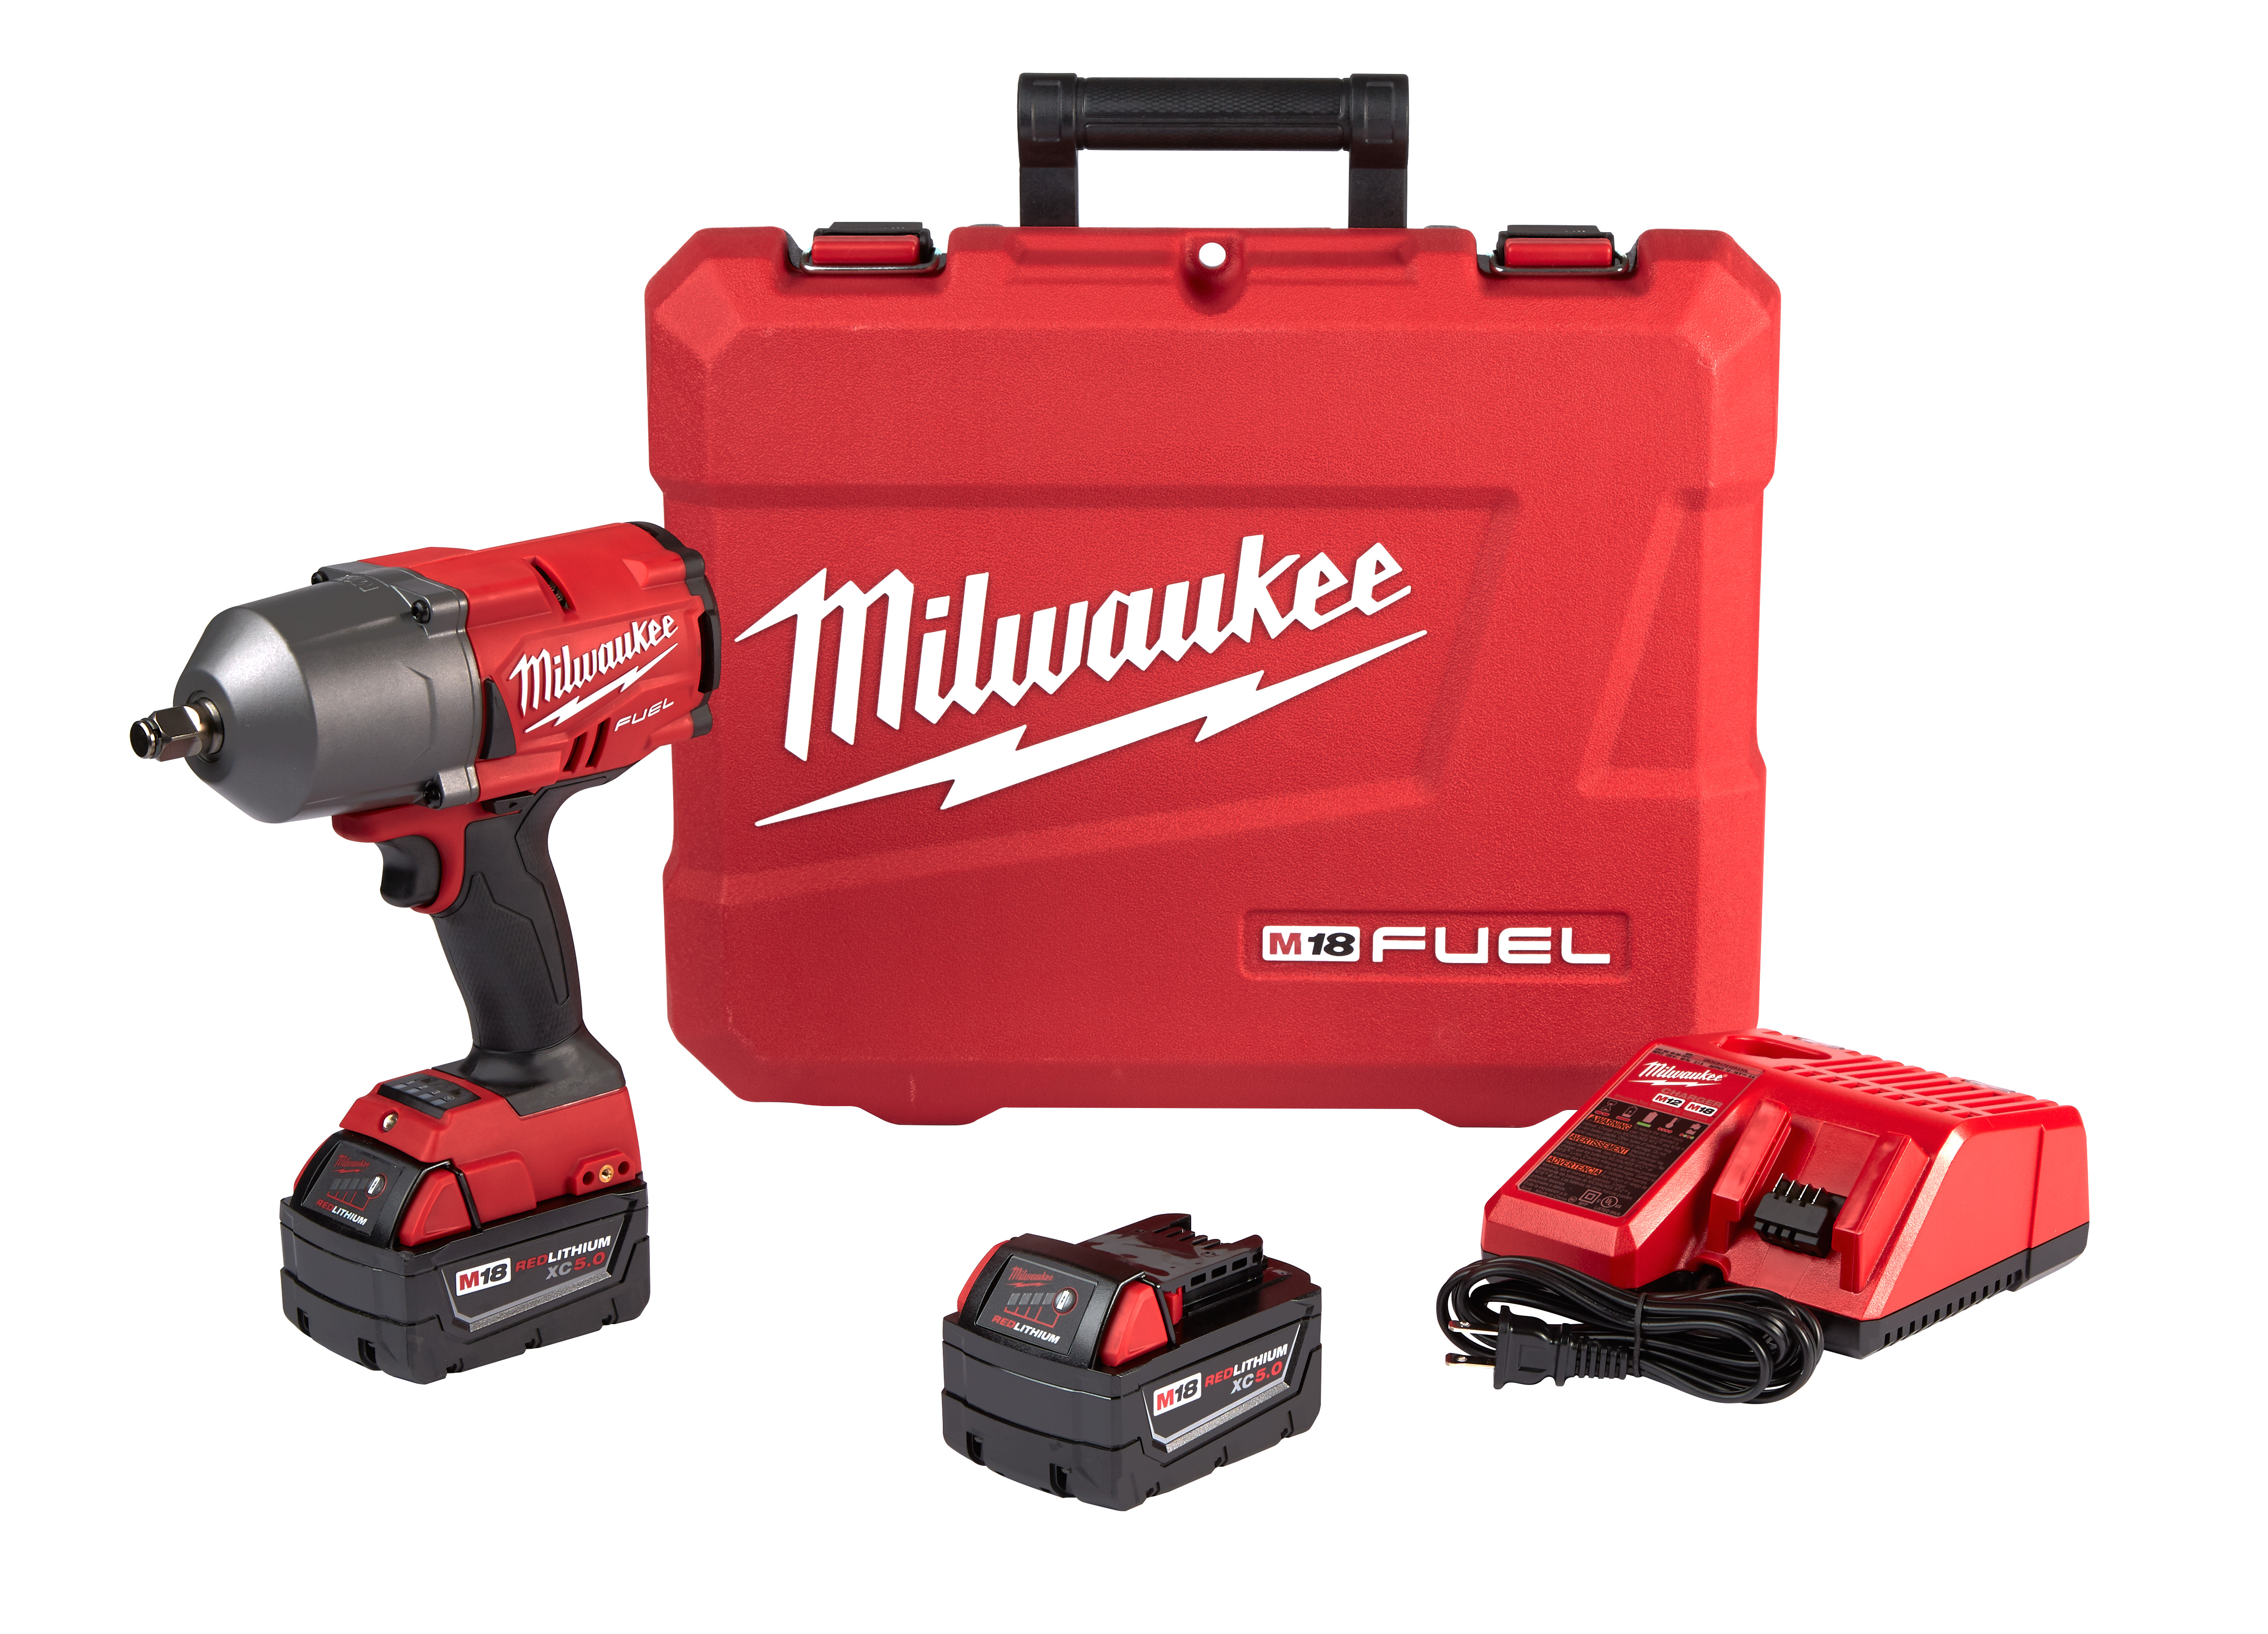 Milwaukee® M18™ FUEL™ 2767-22 Cordless High Torque Impact Wrench With Friction Ring Kit, 1/2 in, 1000 ft-lb Torque, 18 VDC, 8.39 in OAL